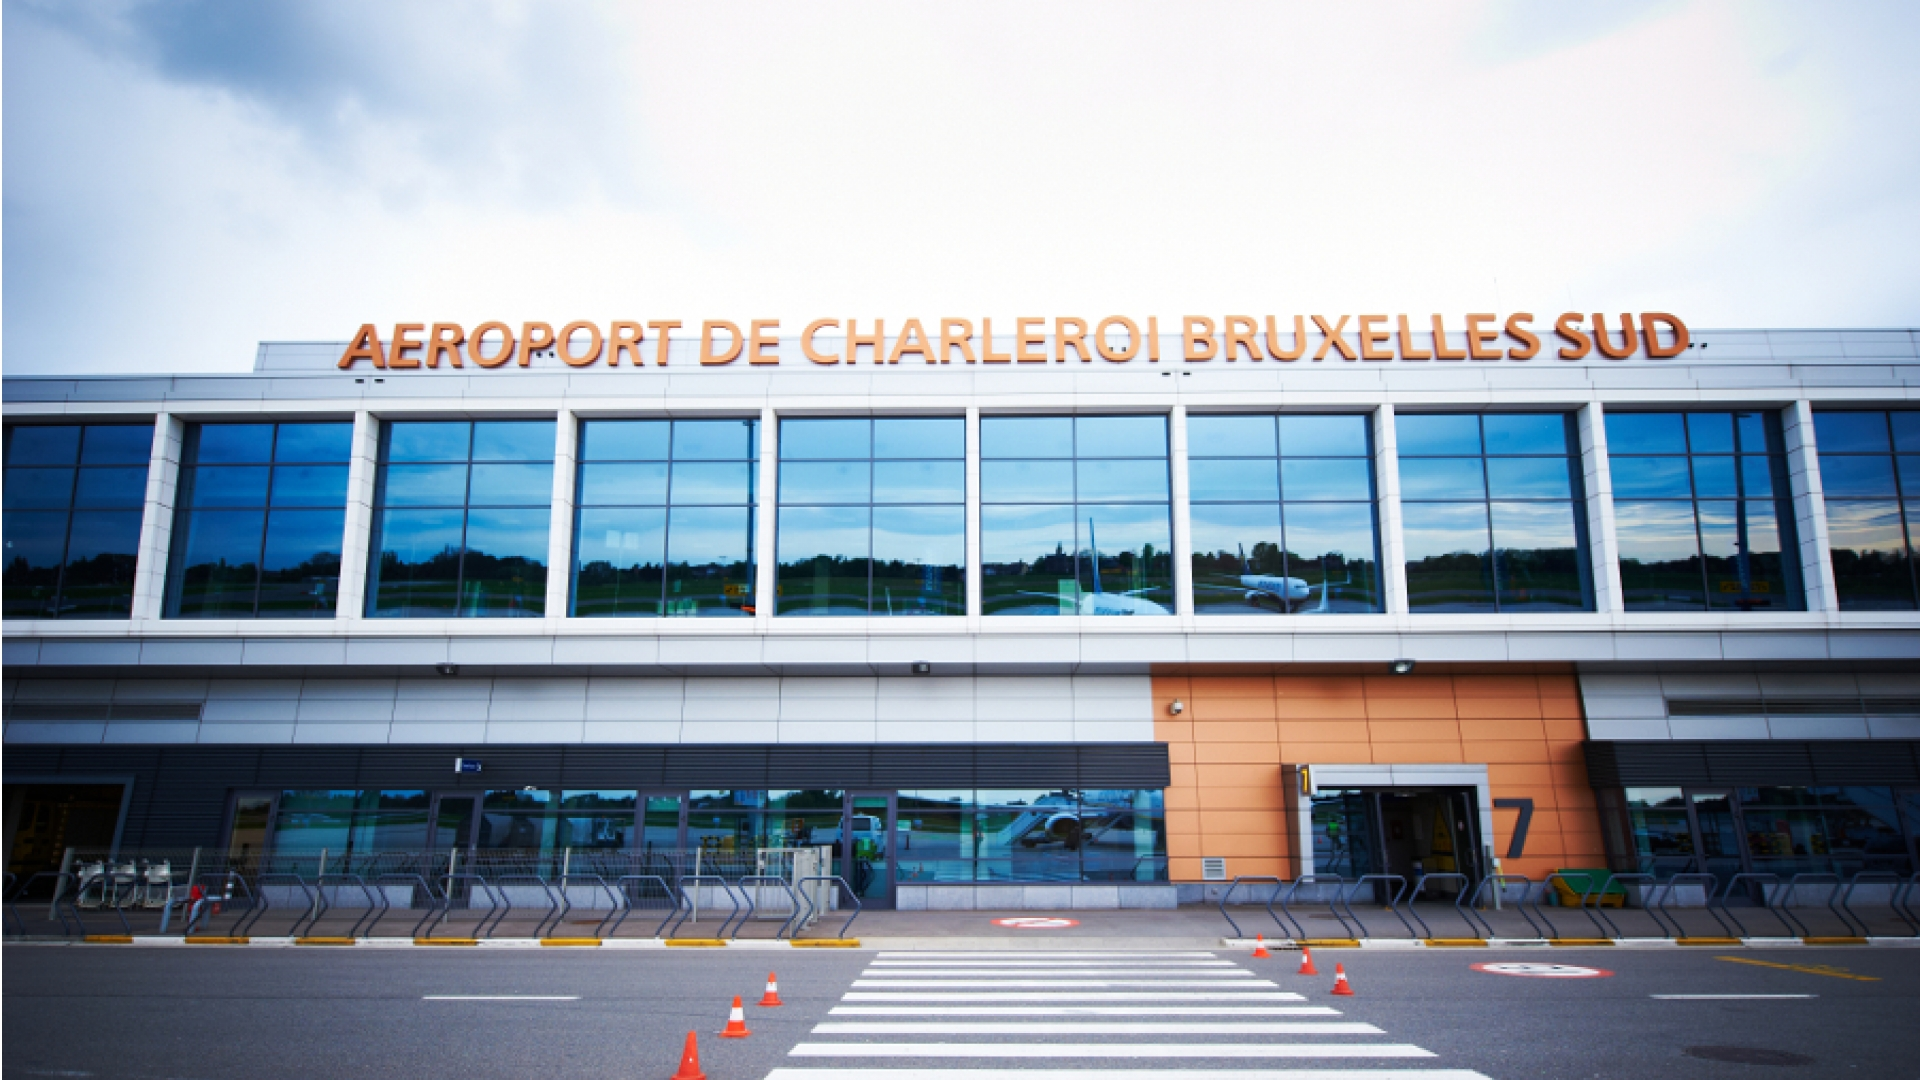 Brussels Charleroi airport (CRL)